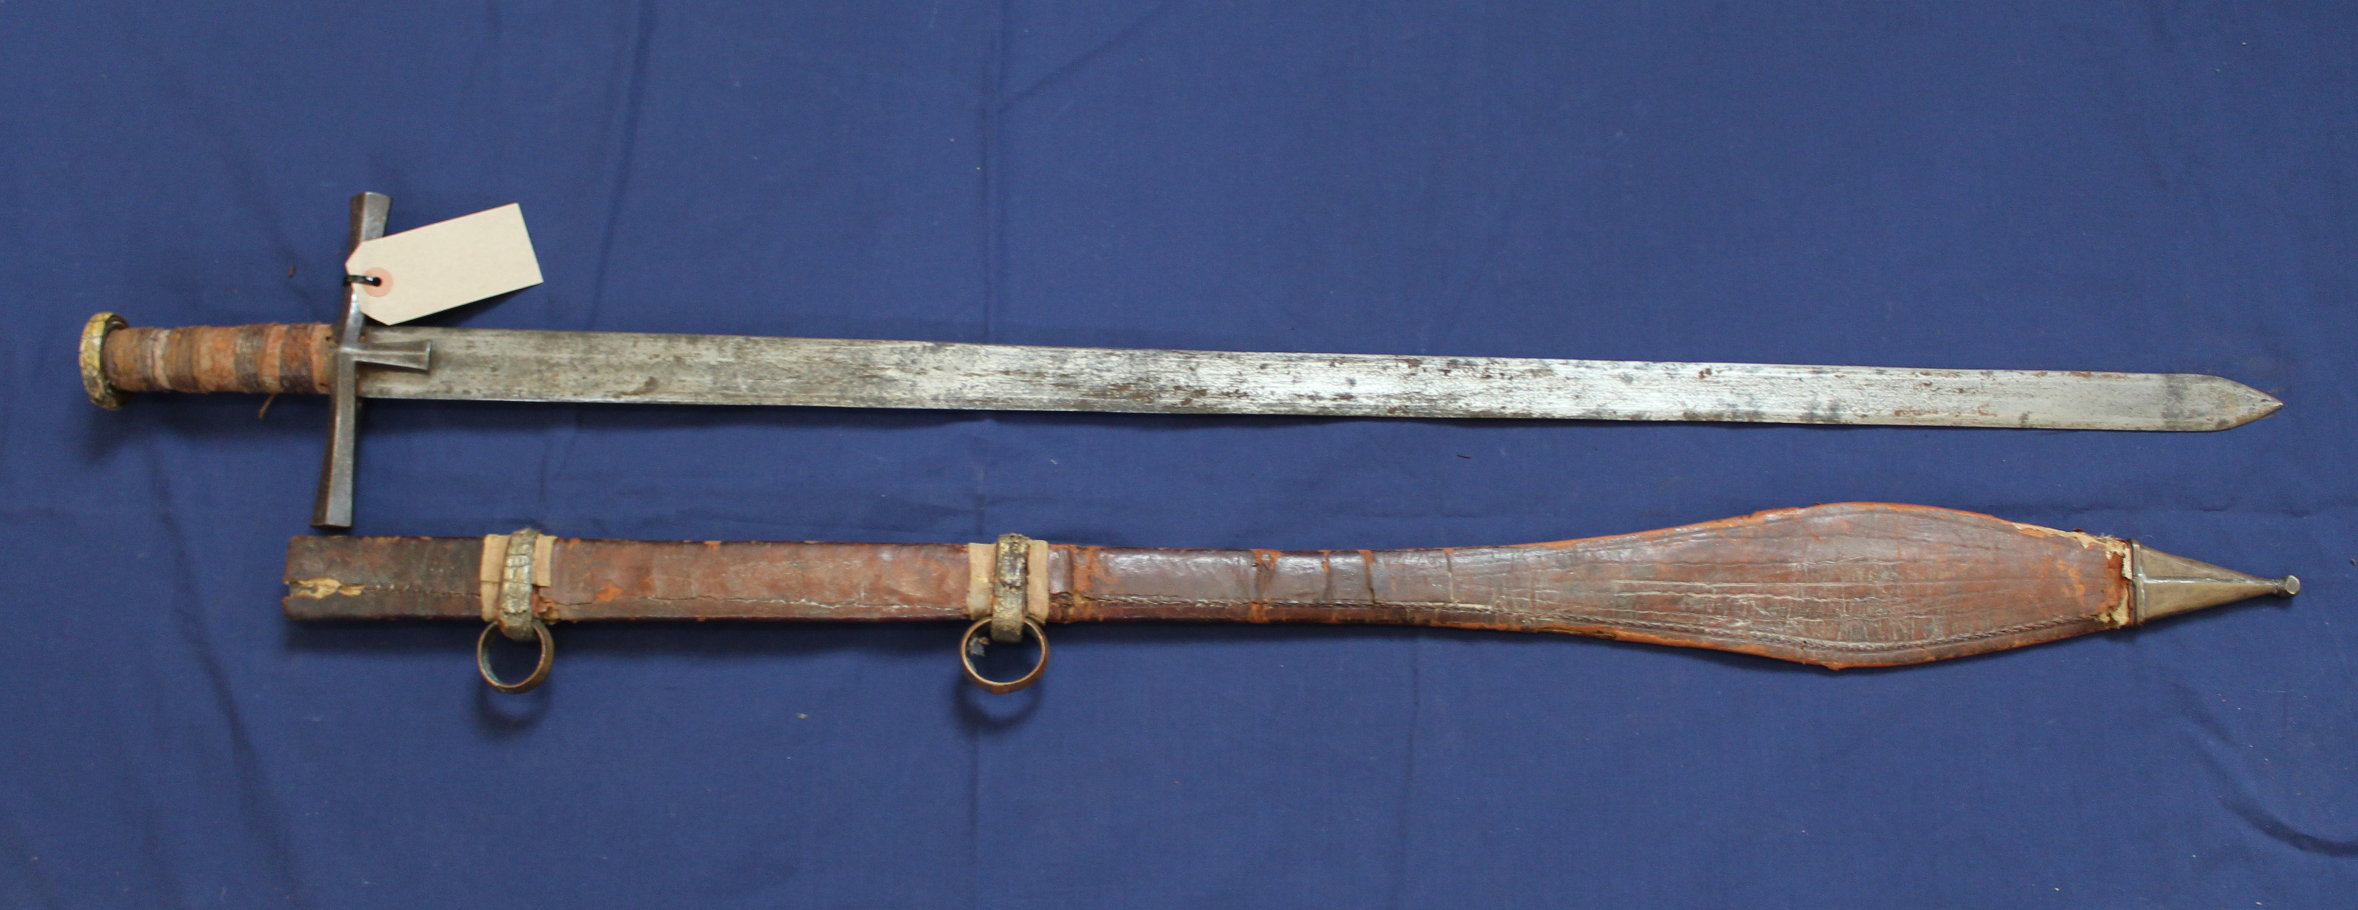 An ethnic sword with leather tooled scabbard - Image 3 of 3